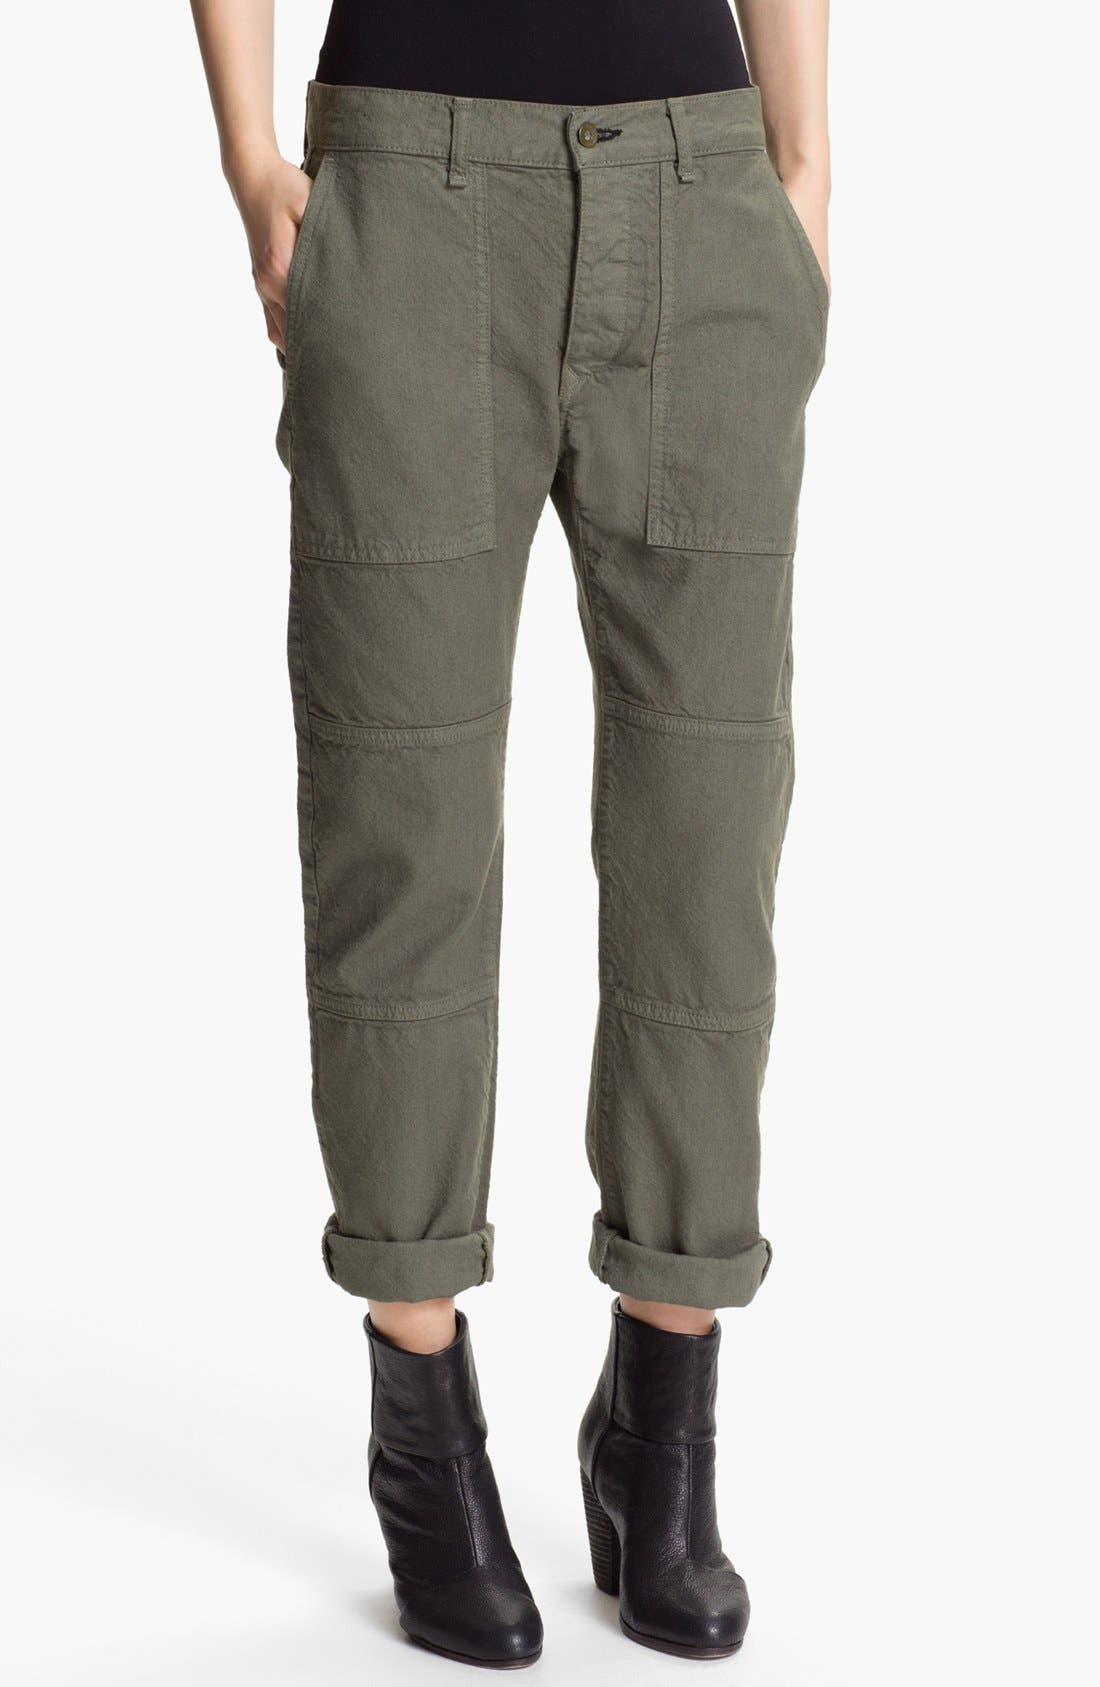 Alternate Image 1 Selected - rag & bone/JEAN 'Brigade' Cargo Twill Pants